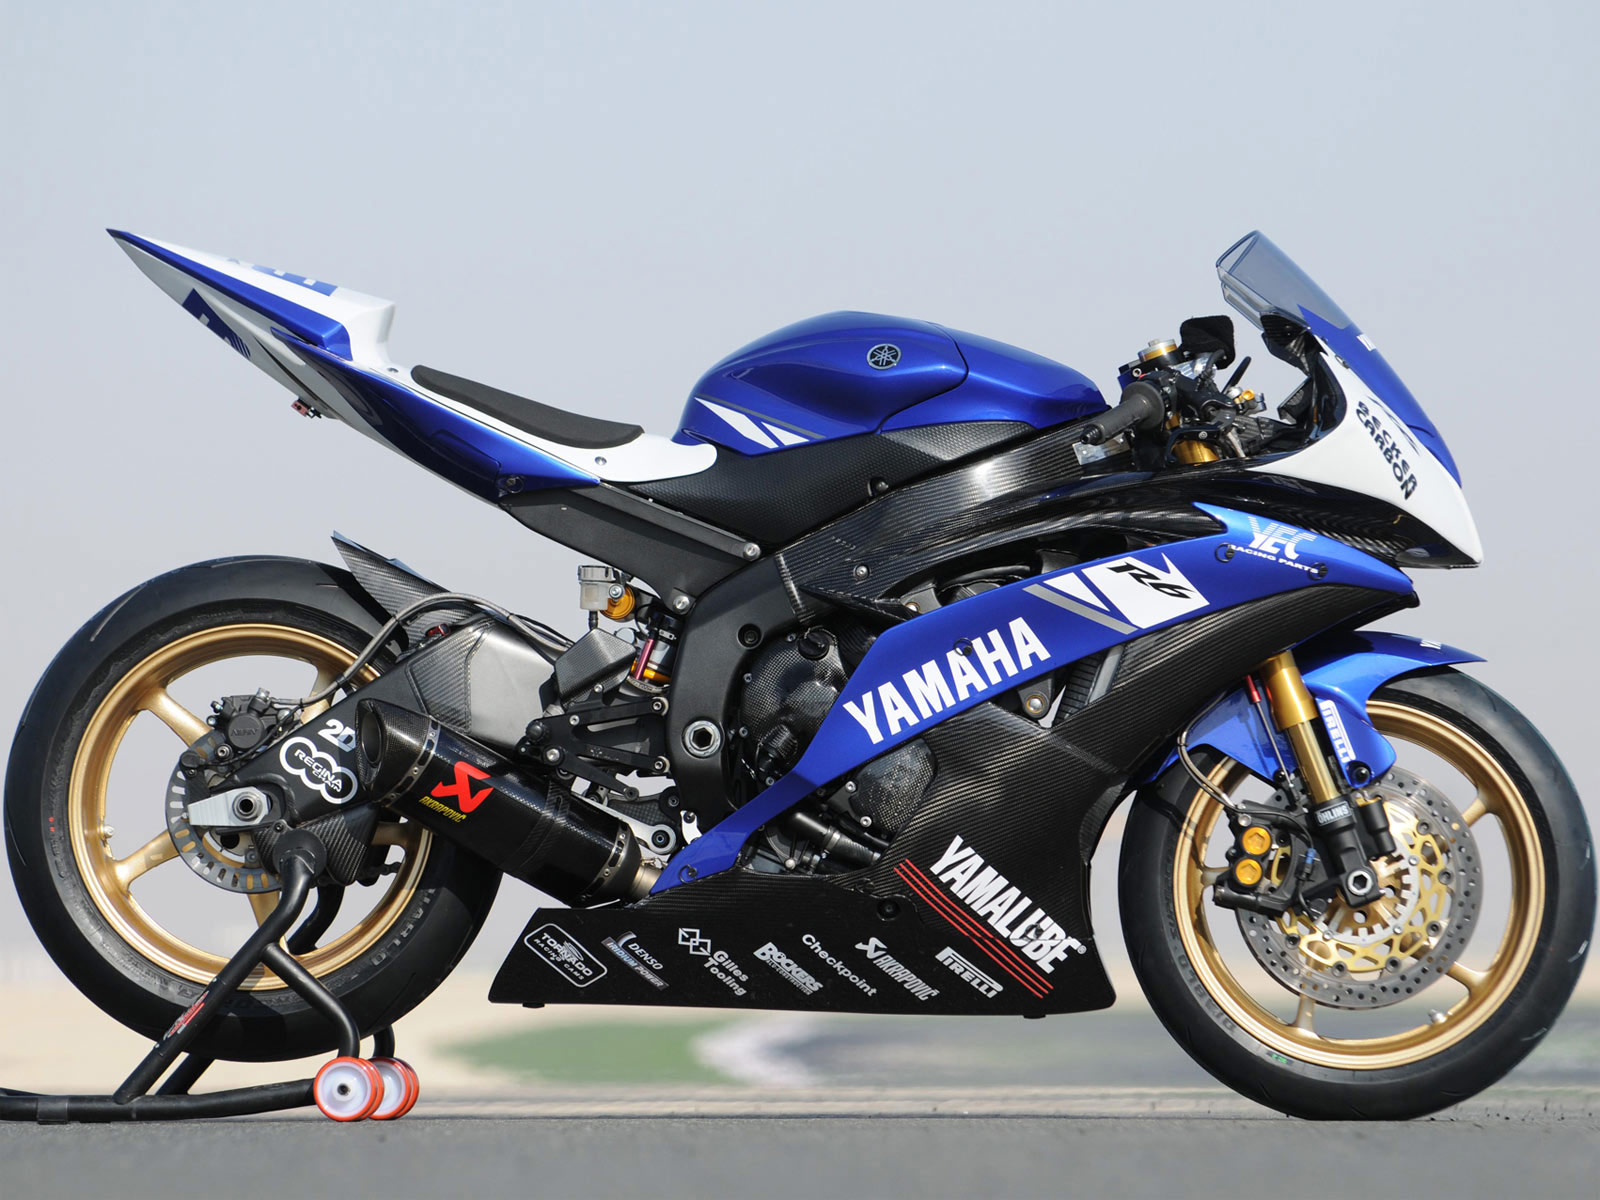 2008 YZF R1 wss YAMAHA pictures and specifications